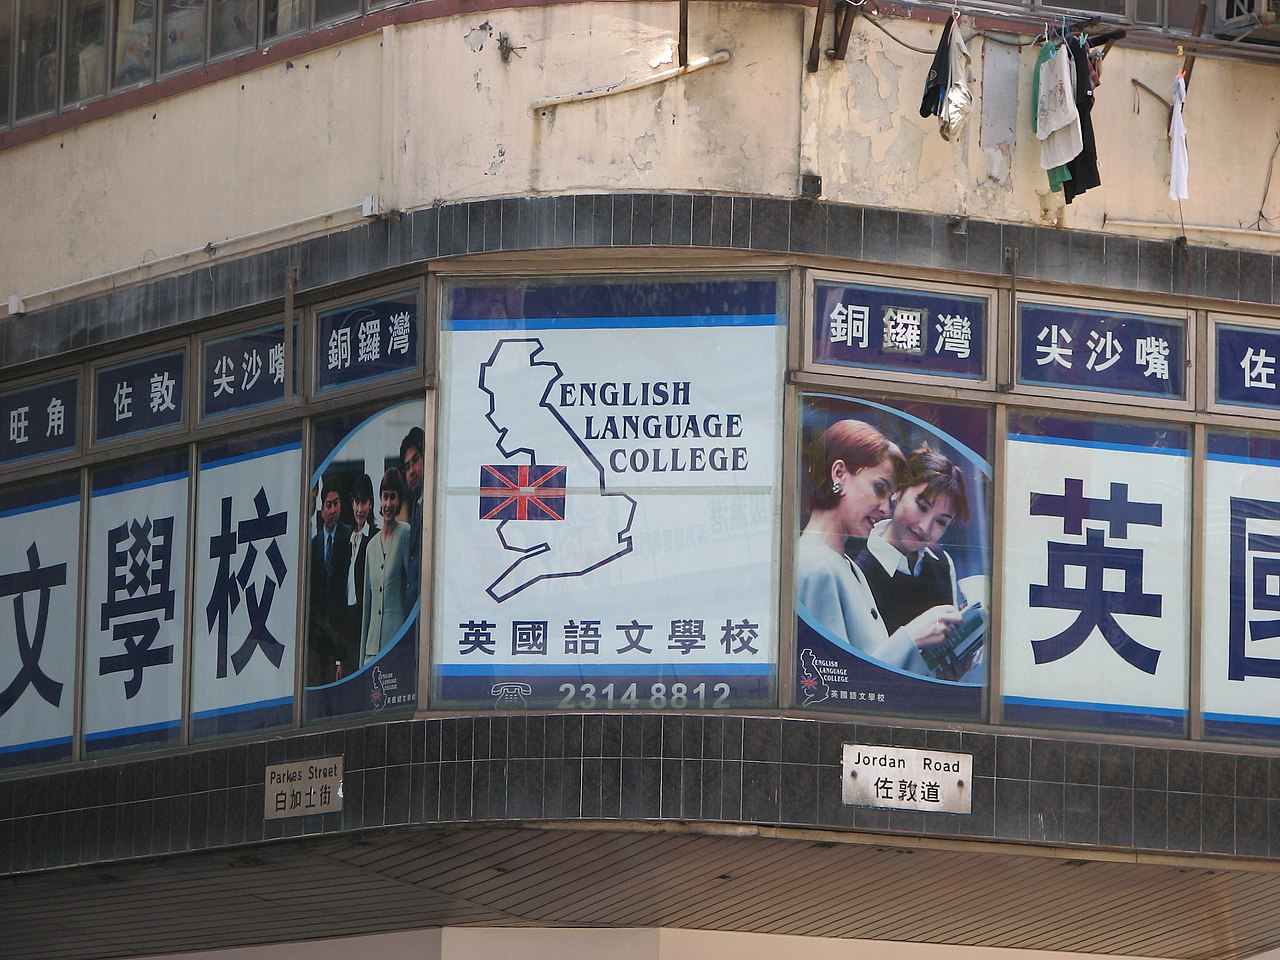 file english language college hong wikimedia commons. Black Bedroom Furniture Sets. Home Design Ideas